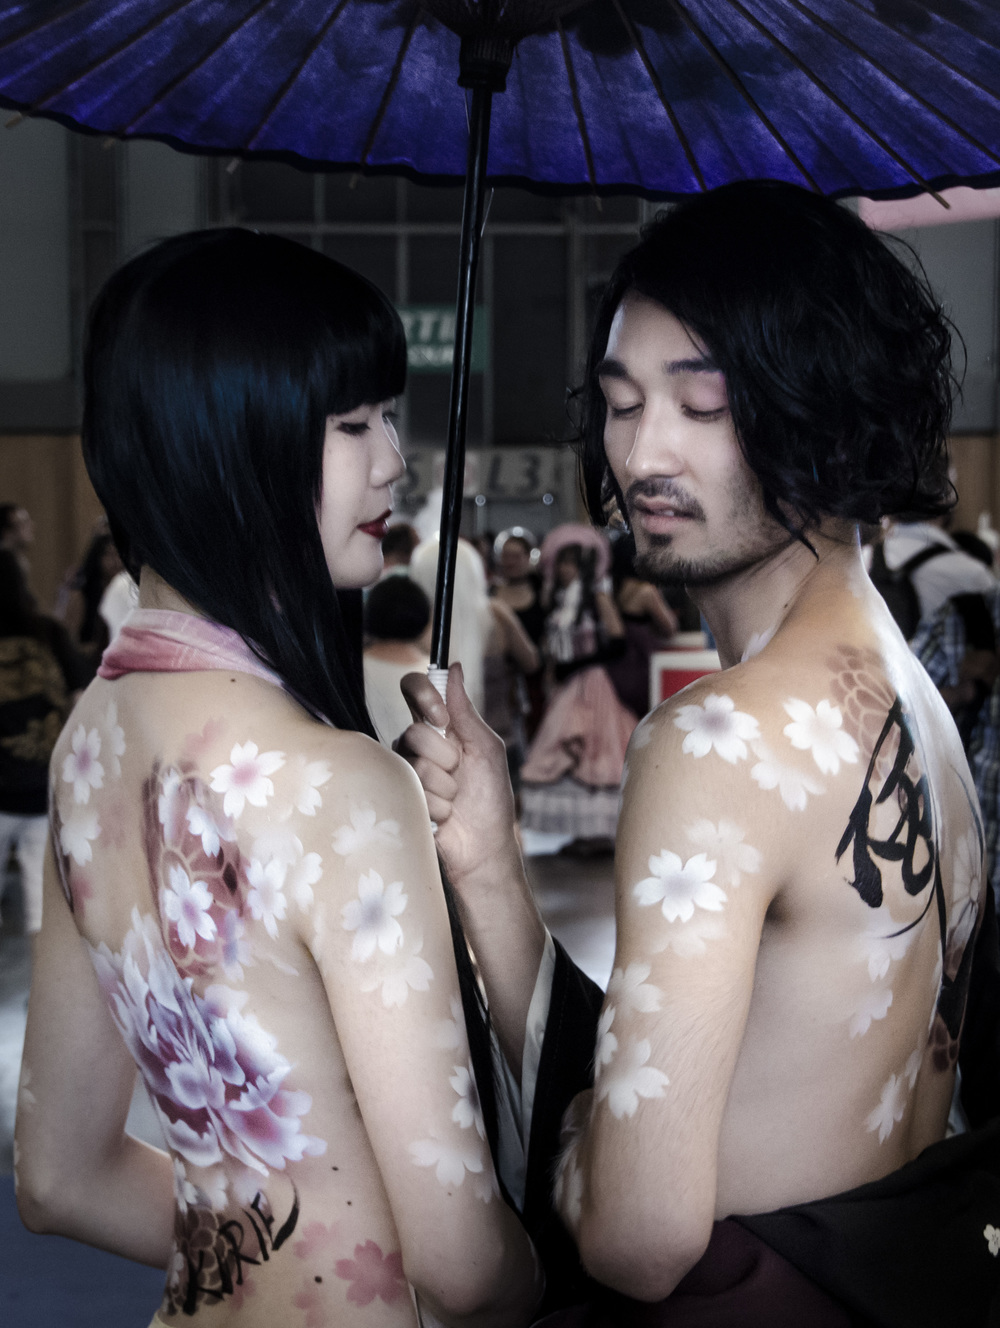 JapaneseCouple.jpg